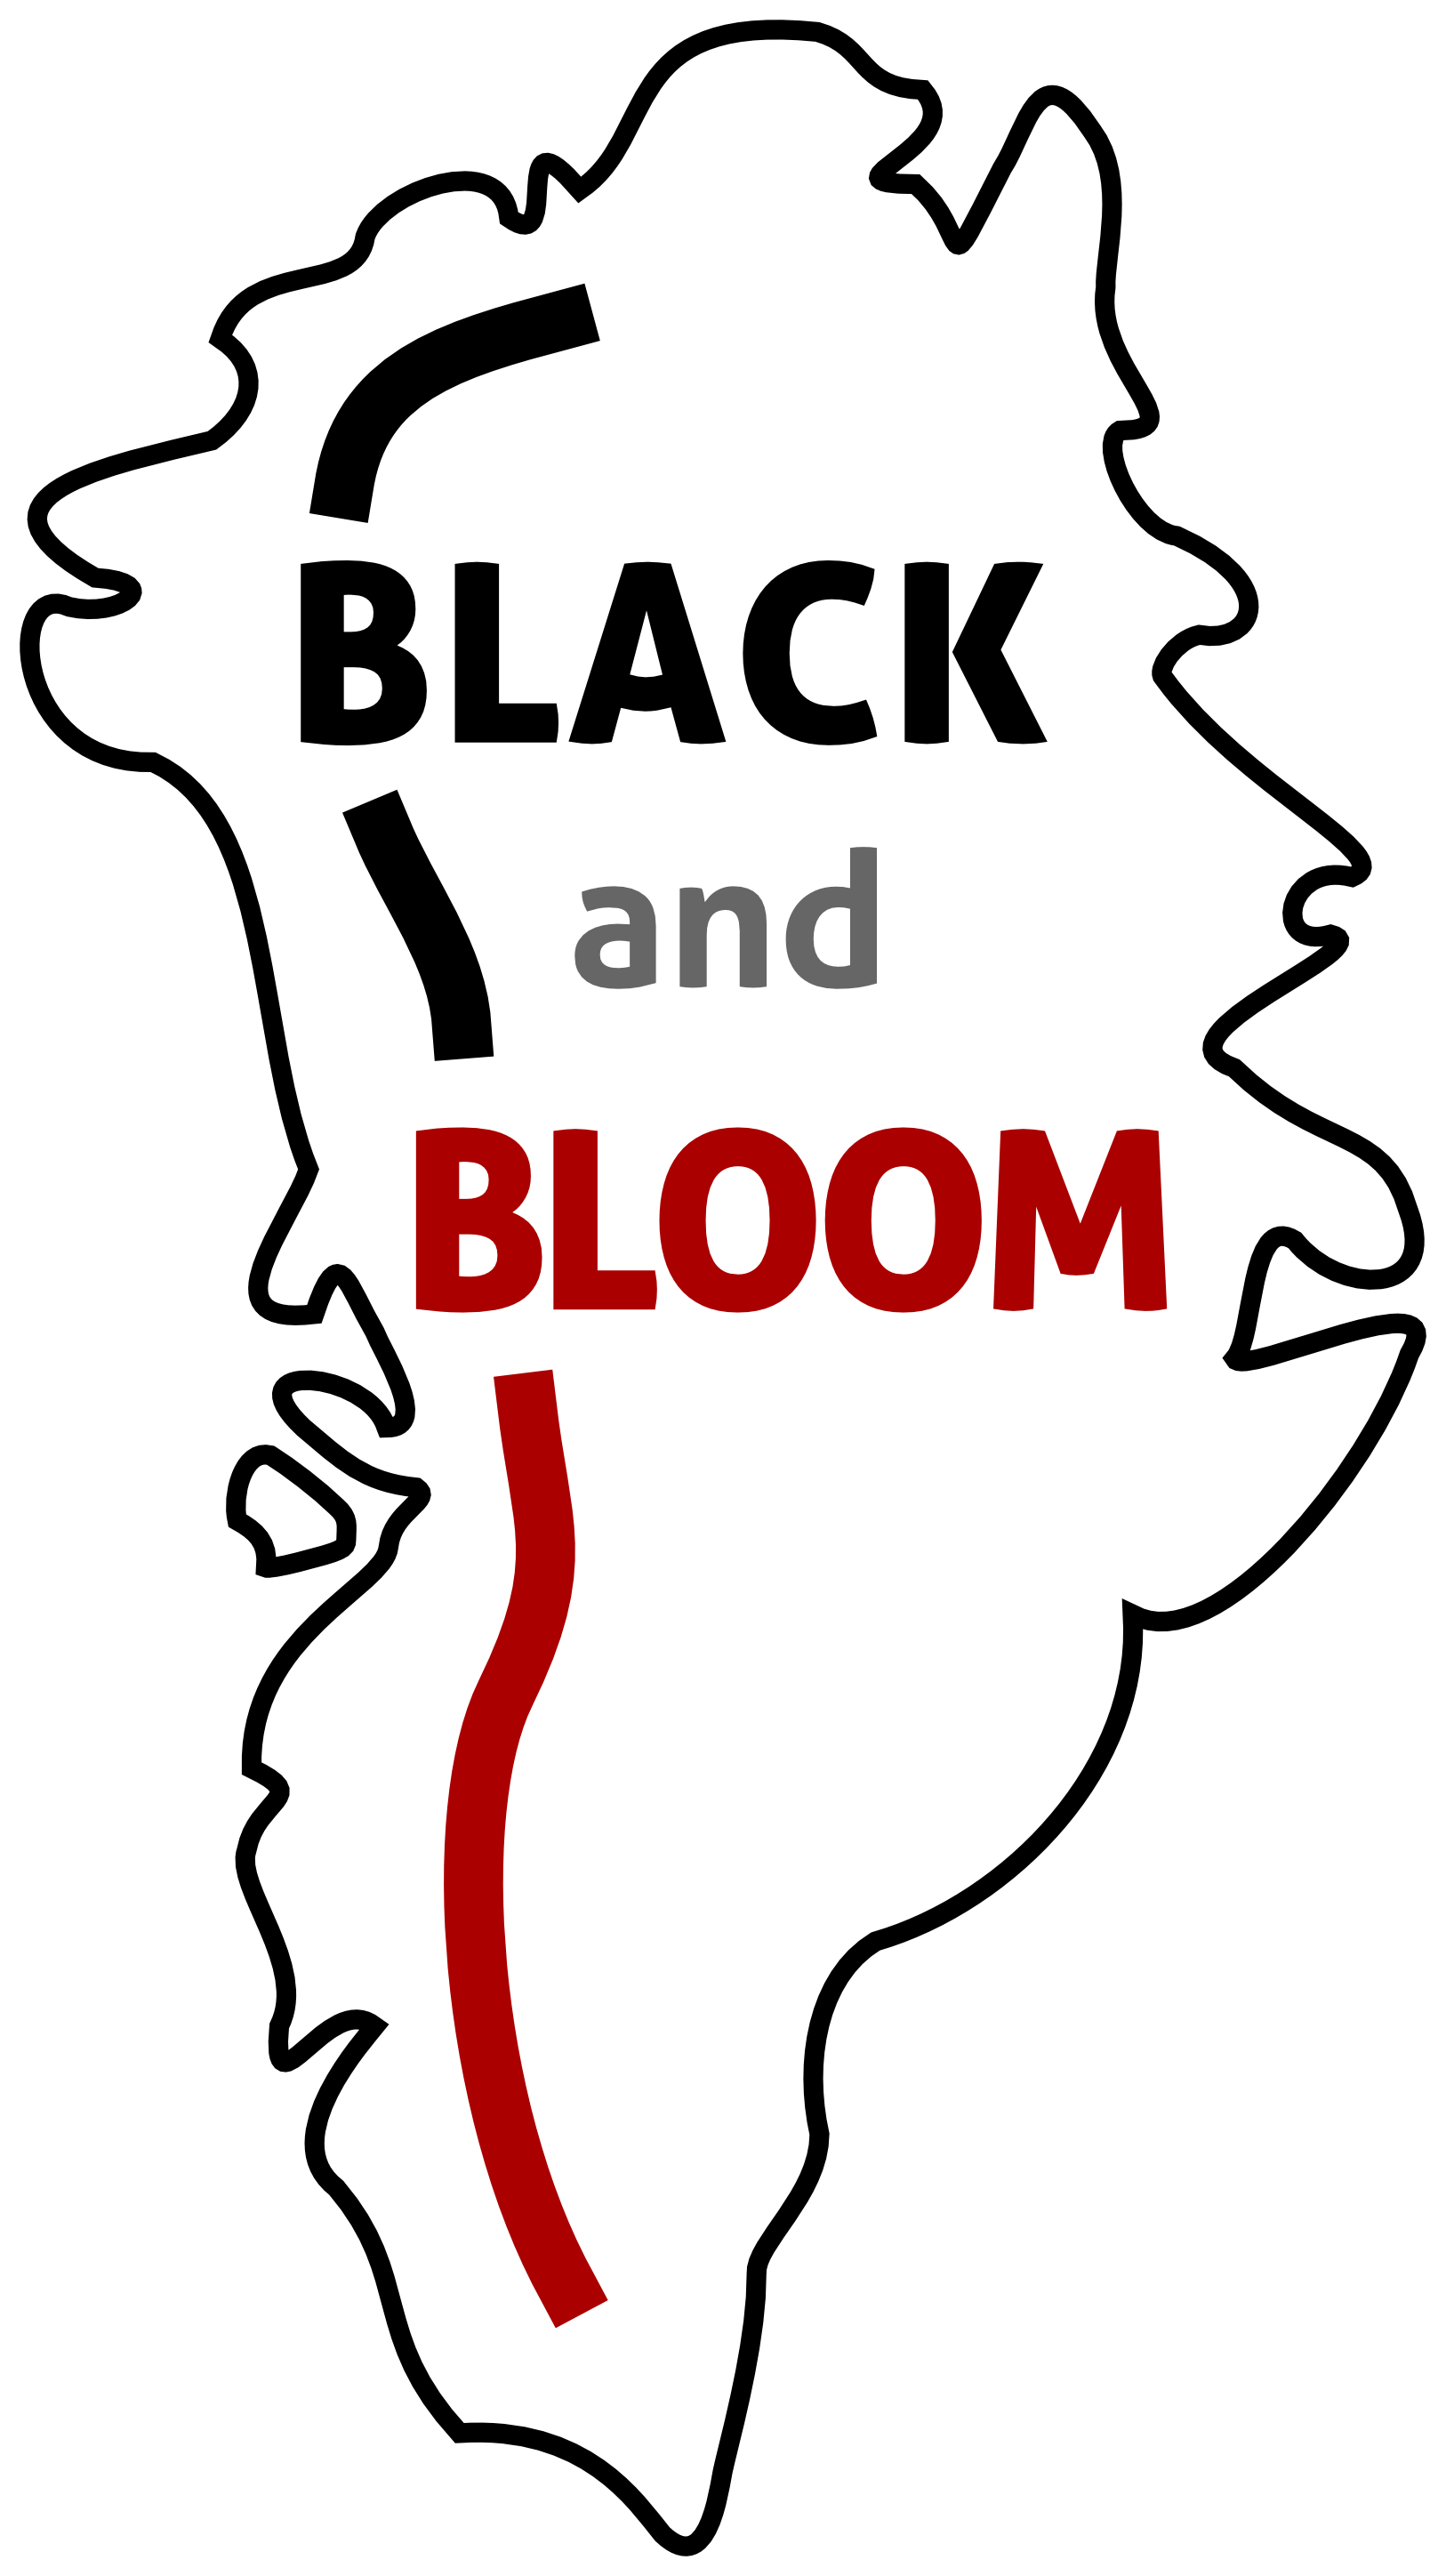 Black and Bloom